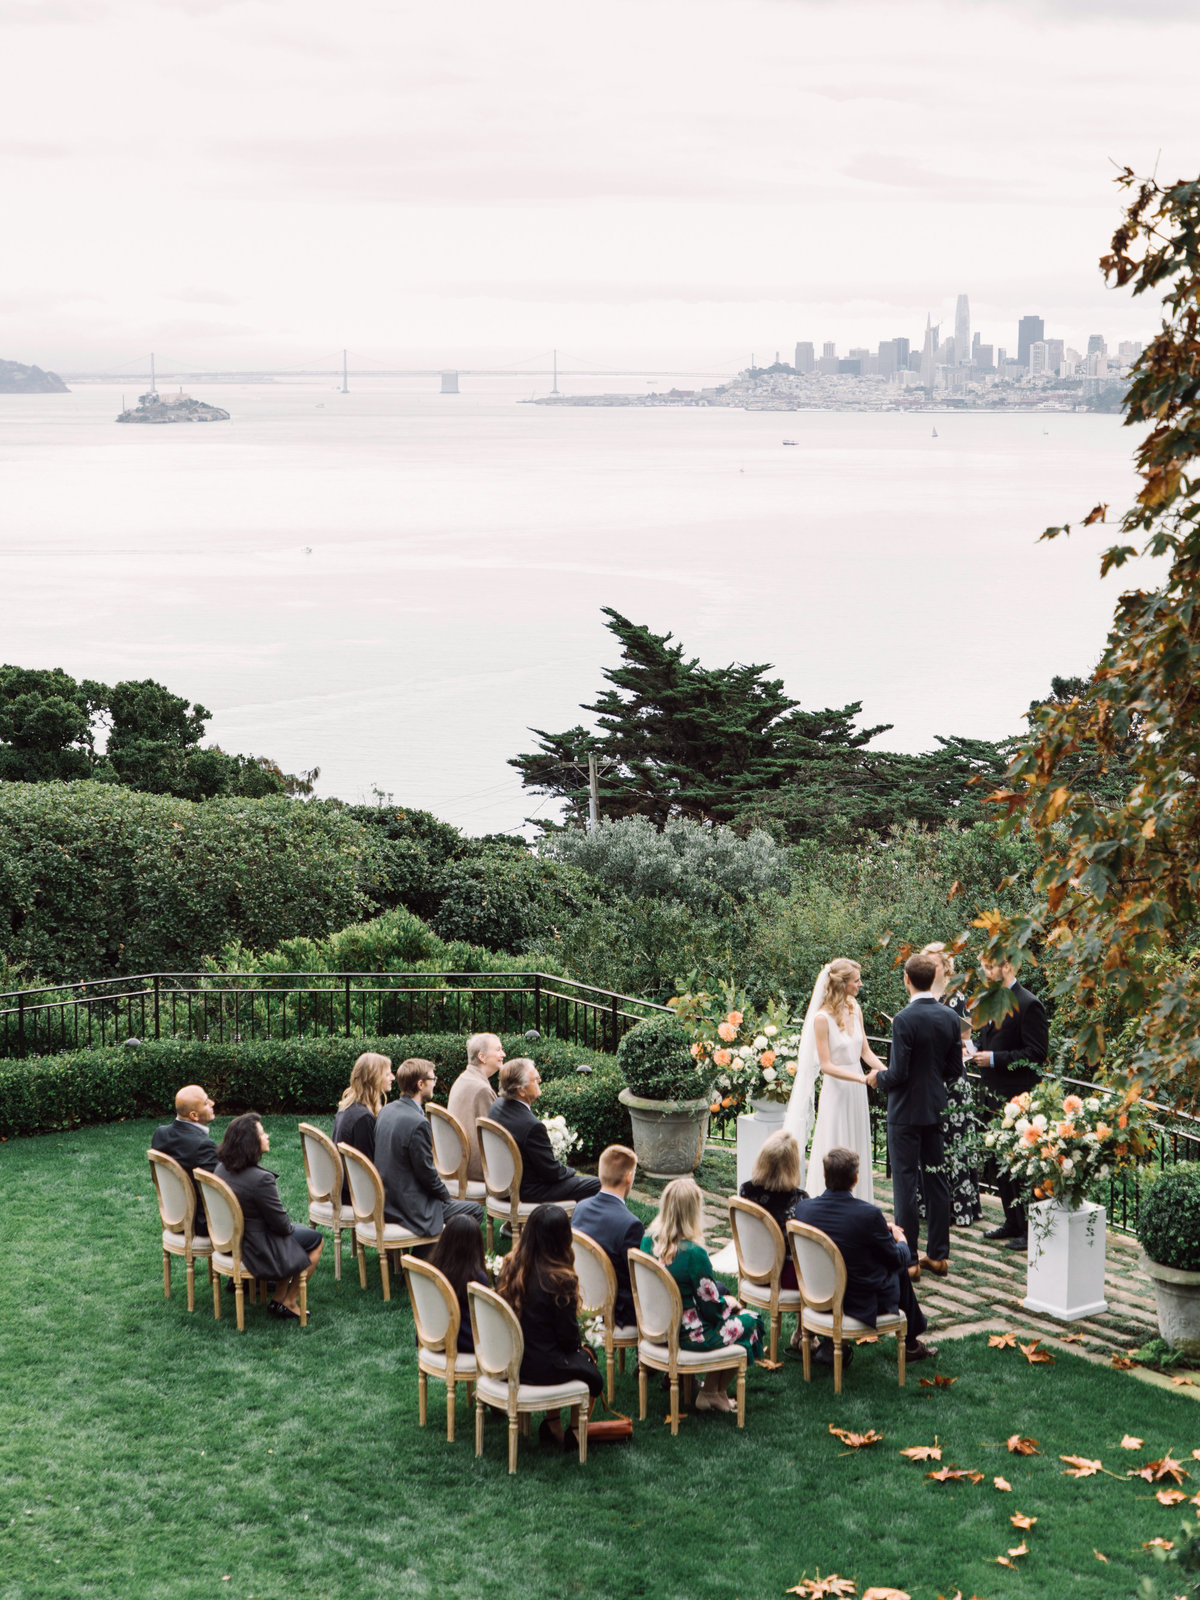 Wedding by Jenny Schneider Events at a private residence in Marin County, California.